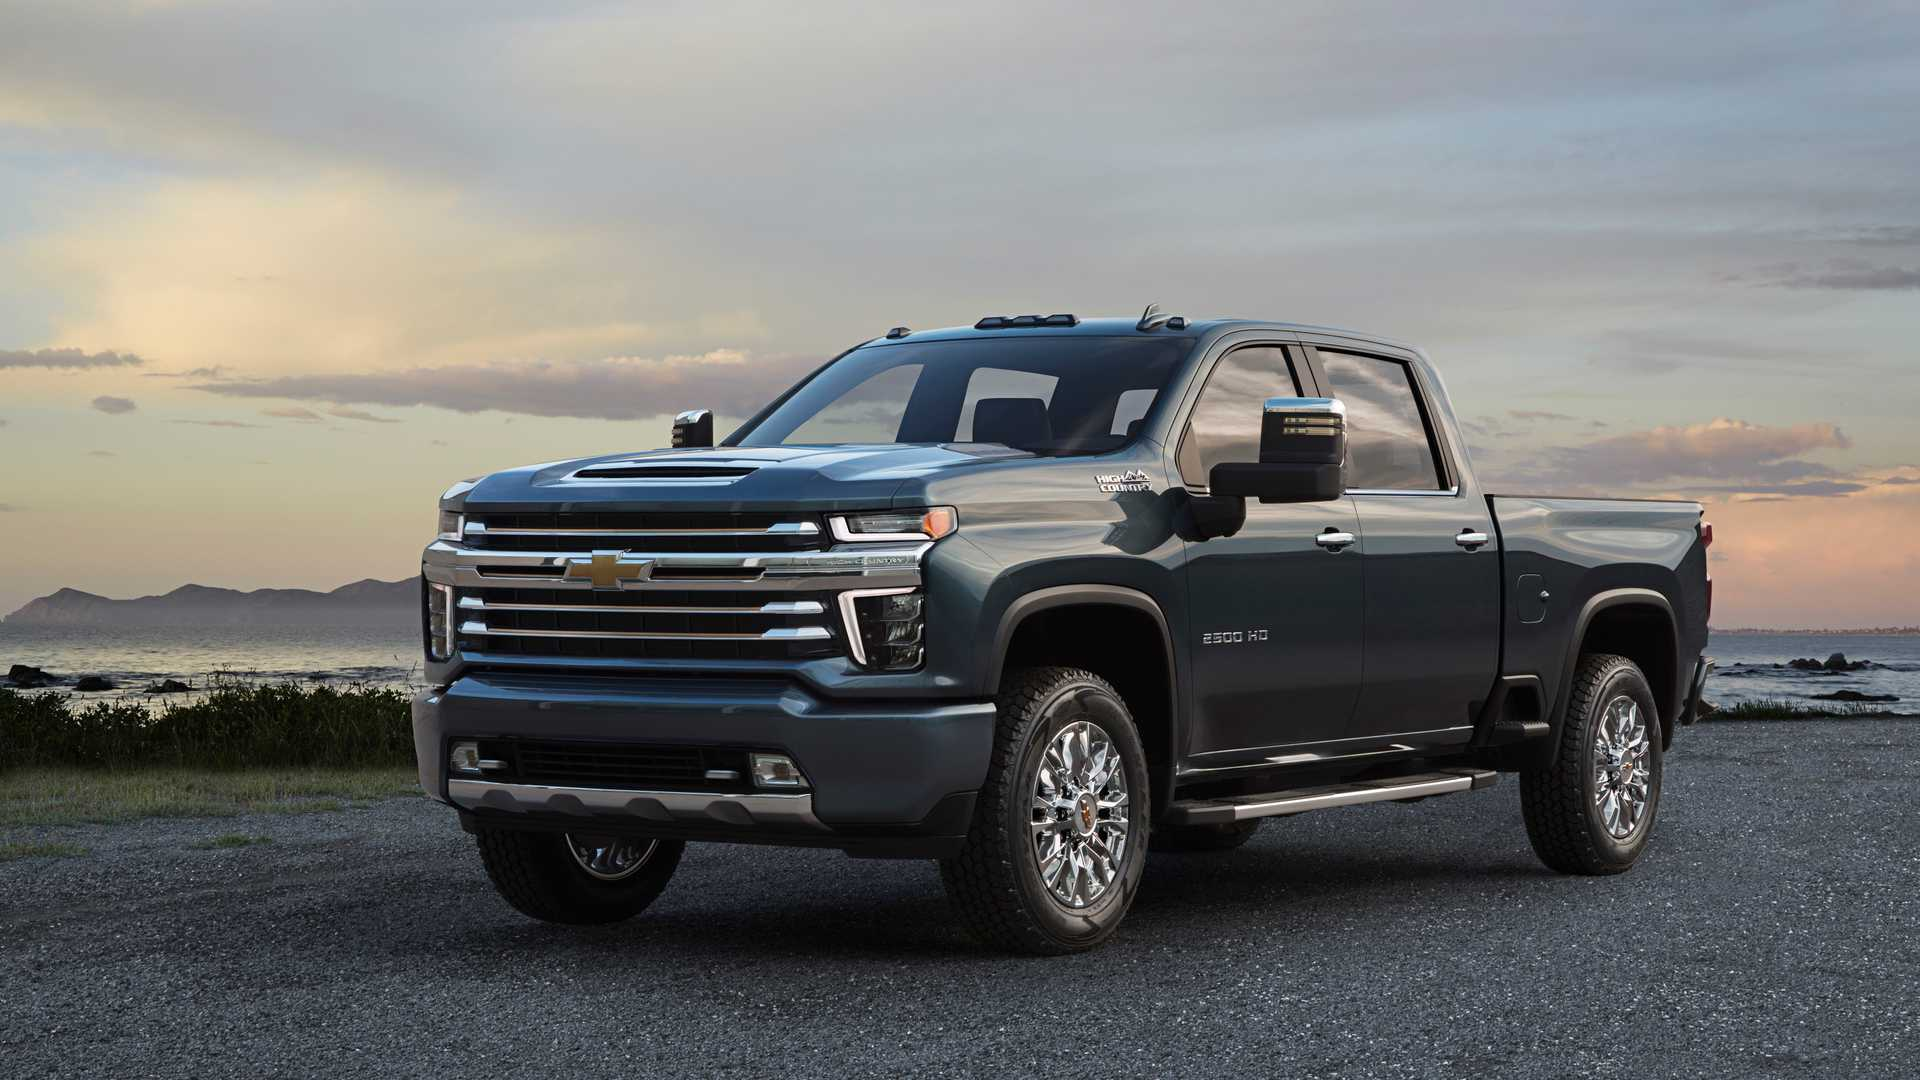 69 The Best 2020 Chevrolet Silverado Concept And Review